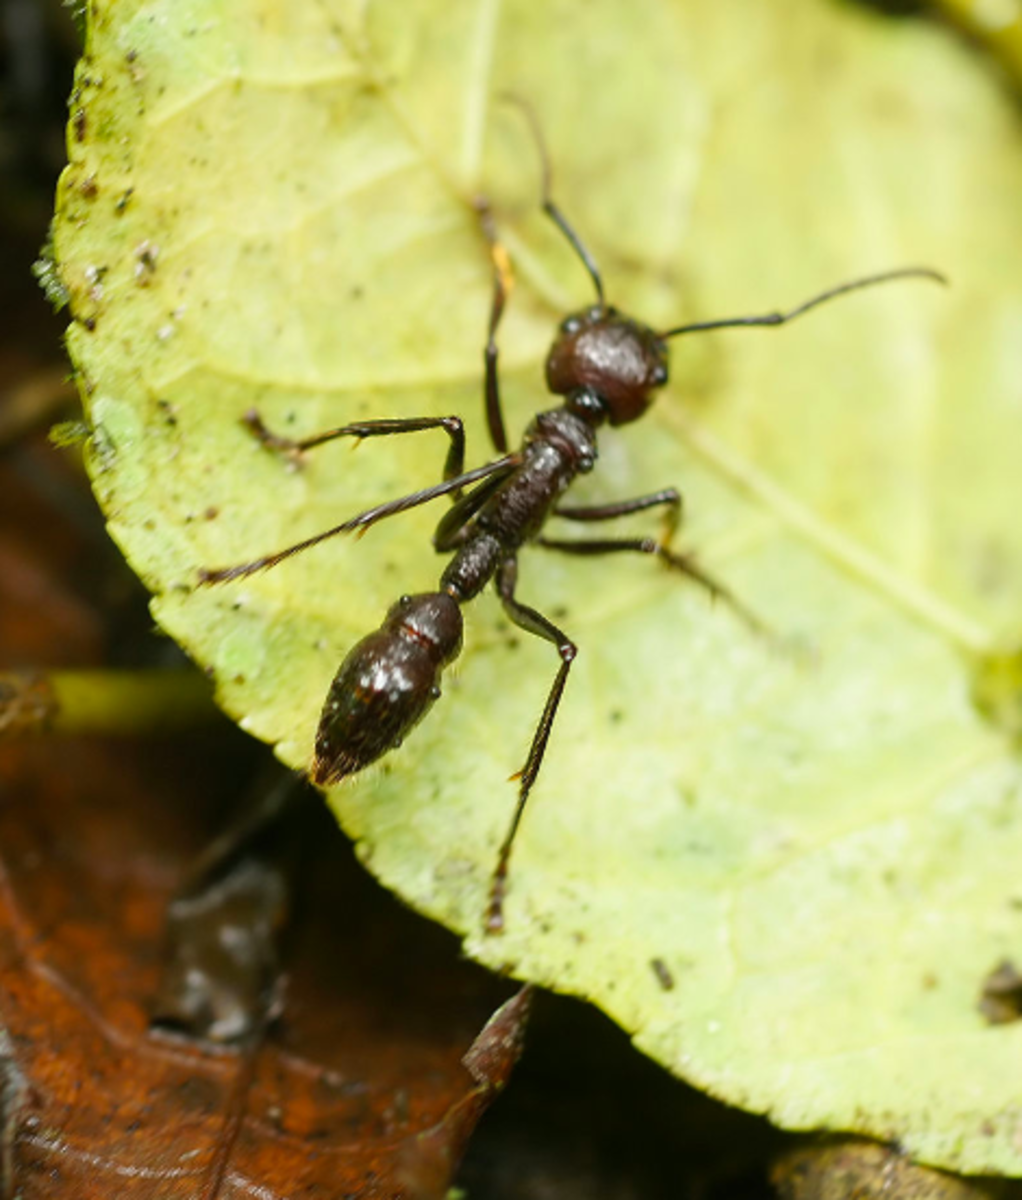 The fearsome bullet ant